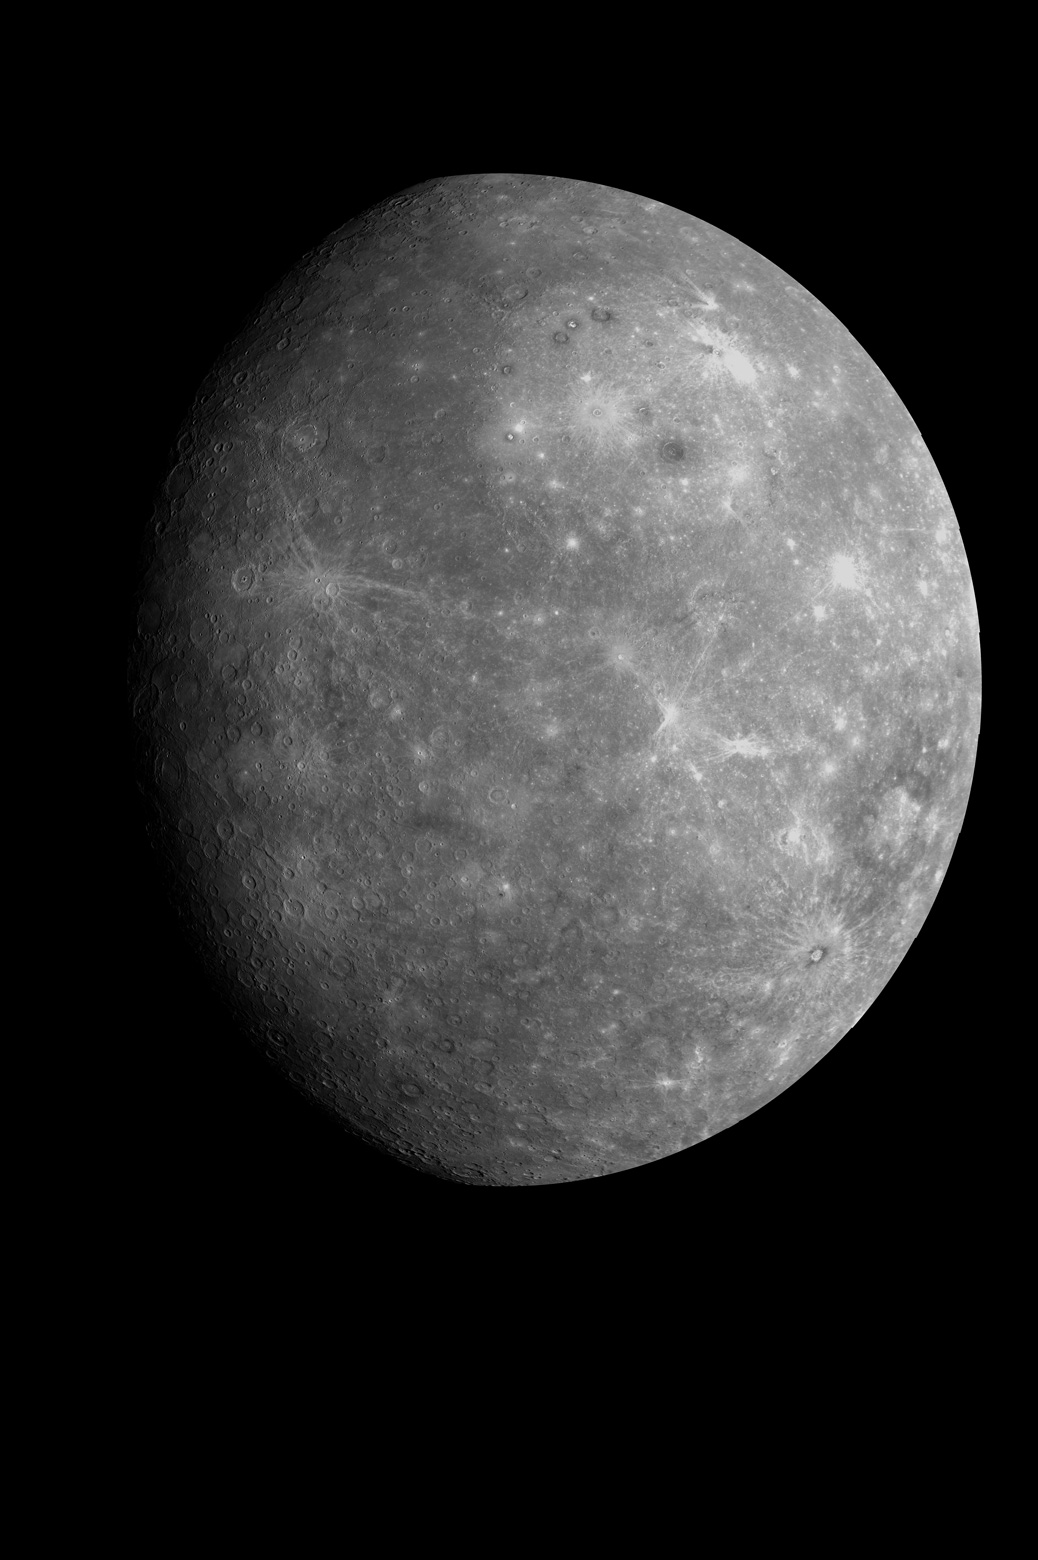 Image of Mercury taken from NASA's MESSENGER spacecraft. Credit: NASA